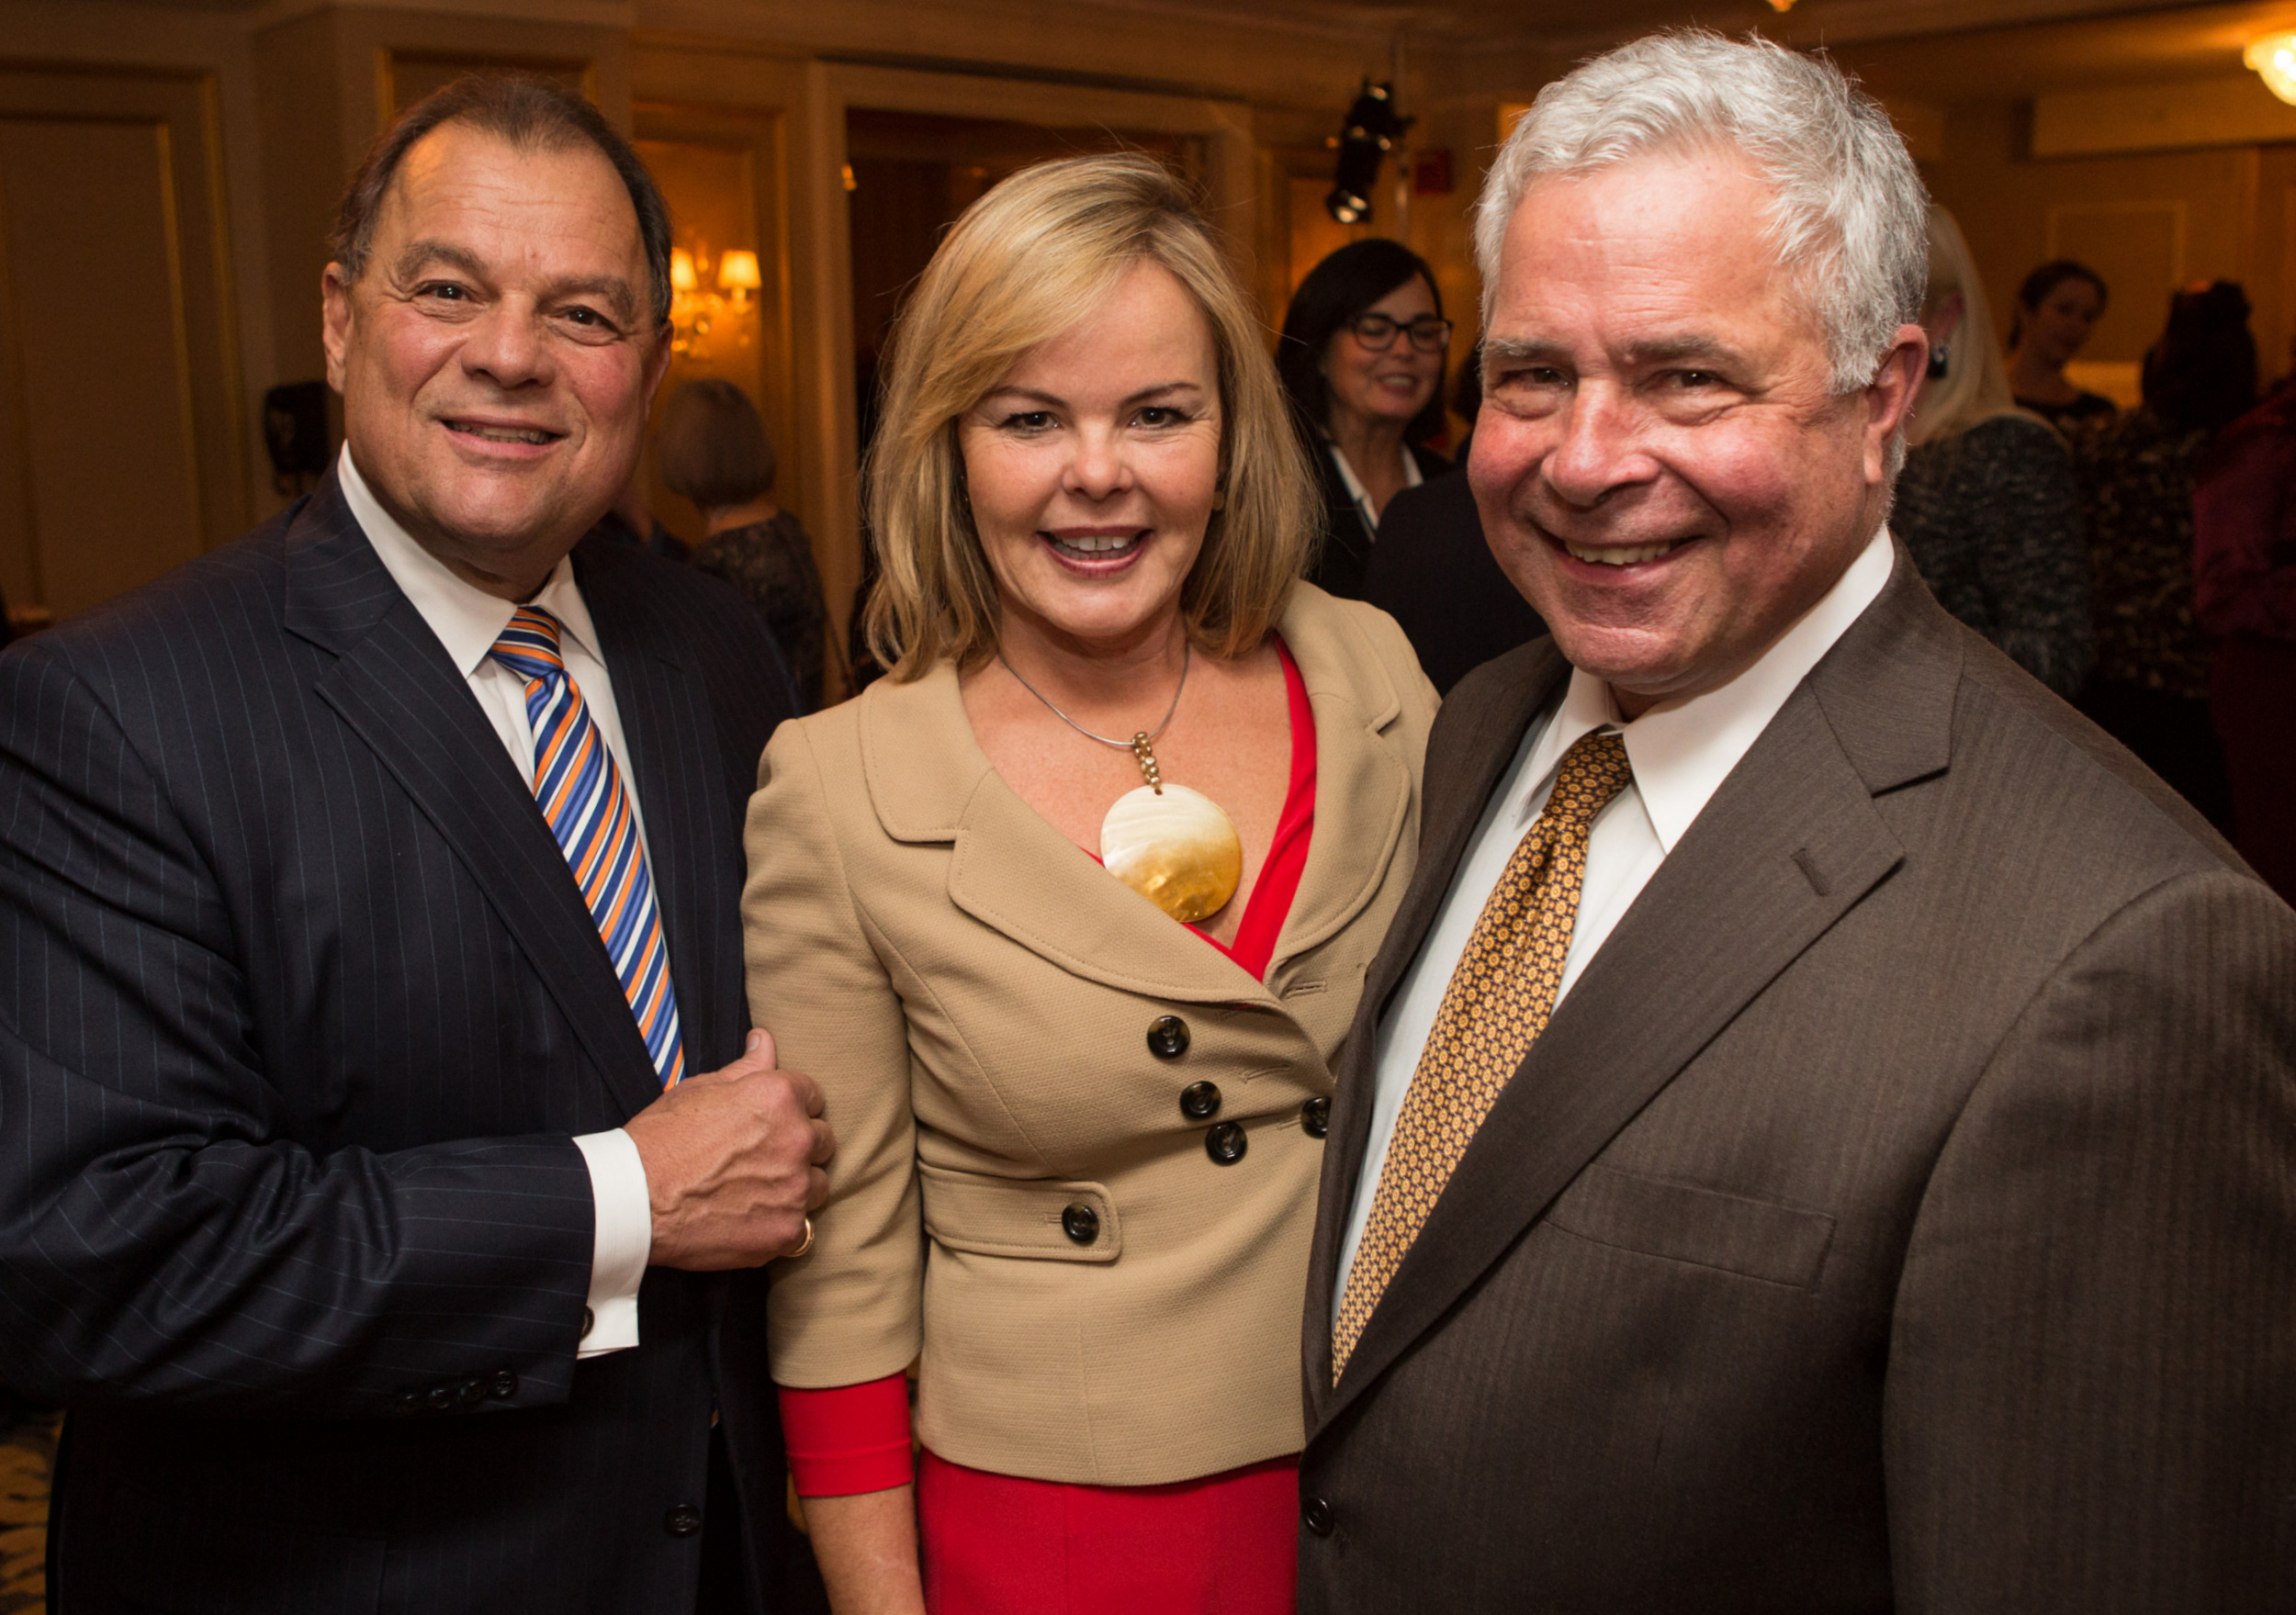 (Left to right): Former MA Senate President and Event Co-Chair Robert Travagline, Cynthia Tocco, and Event Honoree Stephen Tocco (Photo credit: Jake Belcher)